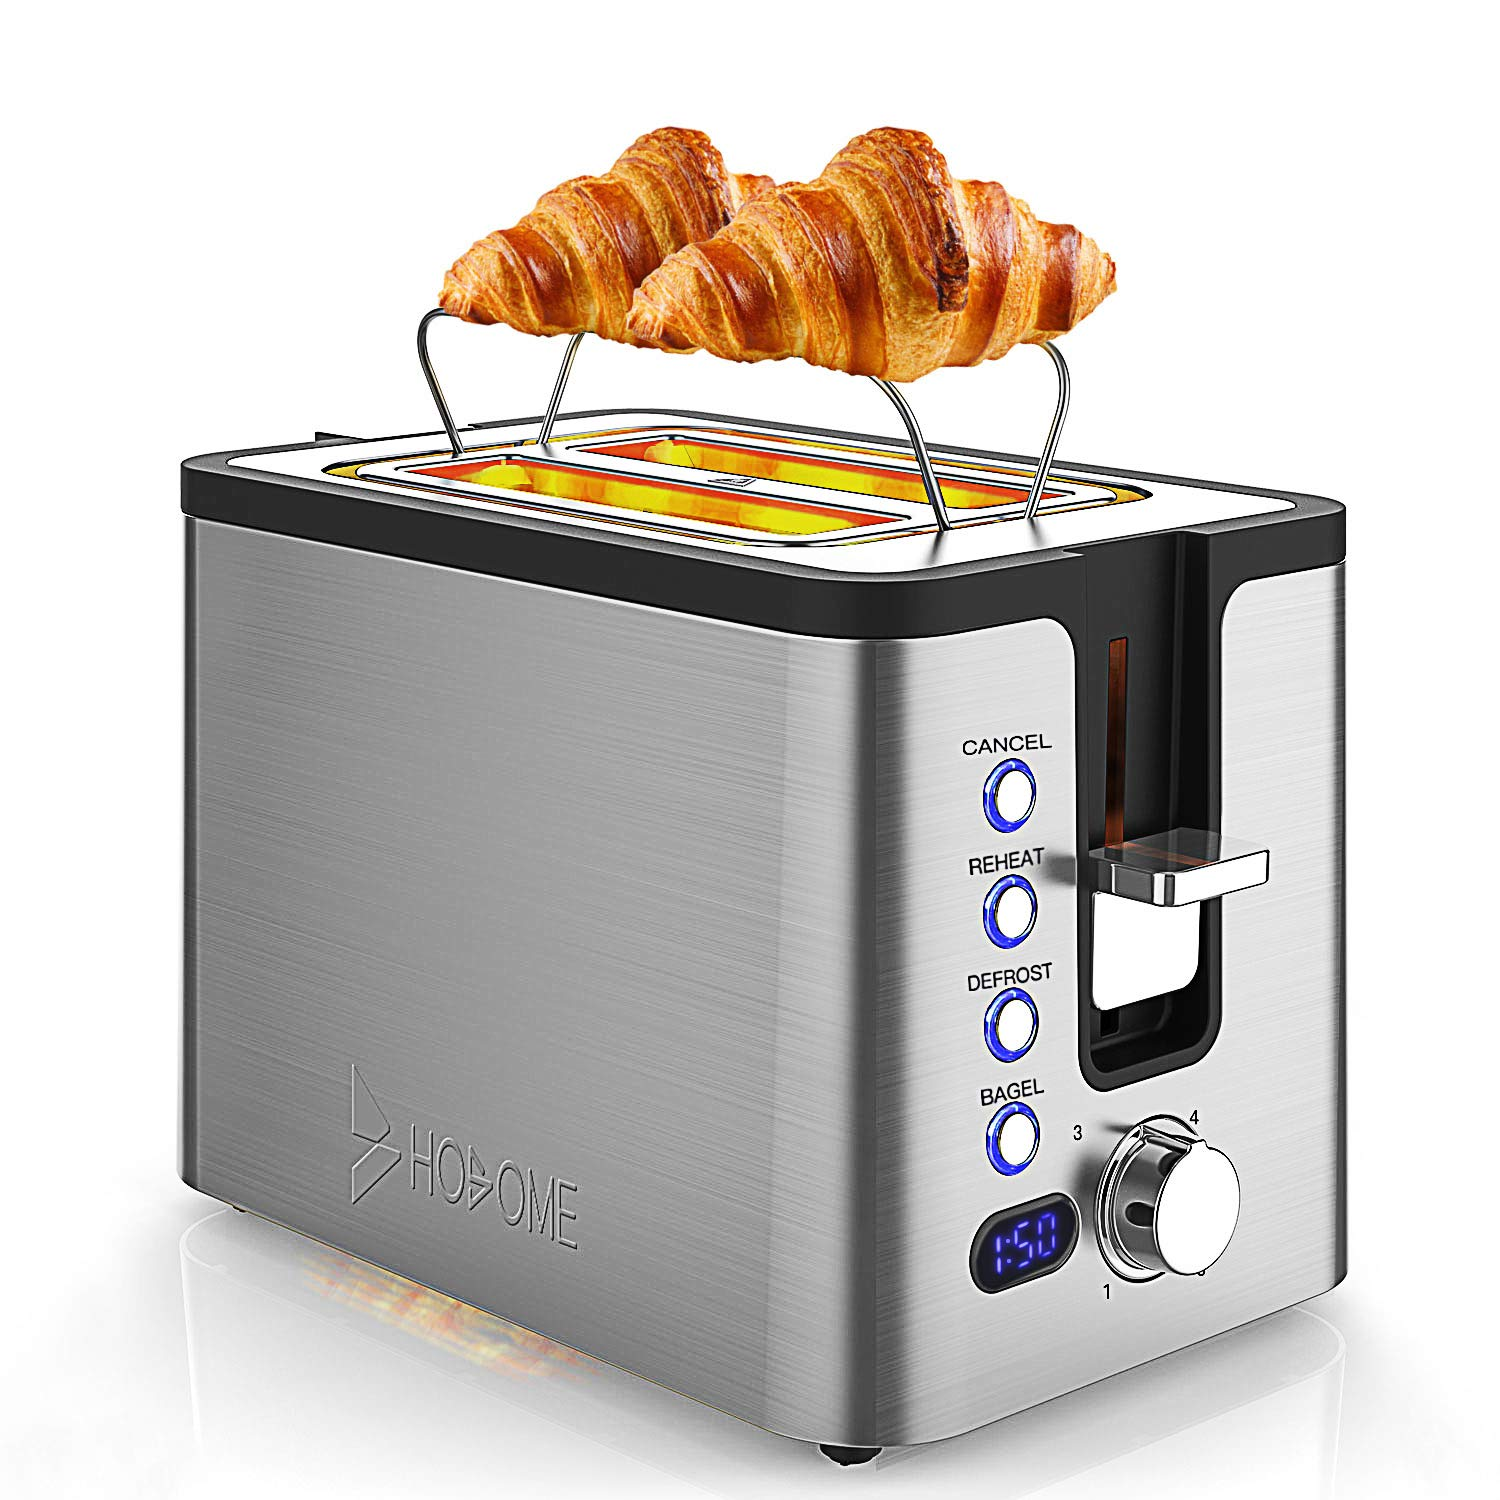 2 Slice Toaster, Hosome Stainless Steel Bread Bagel Toaster Extra Wide Slots Toasters with Warming Rack, 6 Shade Settings, LED Display, Removable Crumb Tray, Bagel/Defrost/Reheat/Cancel Function, 800W by Hosome